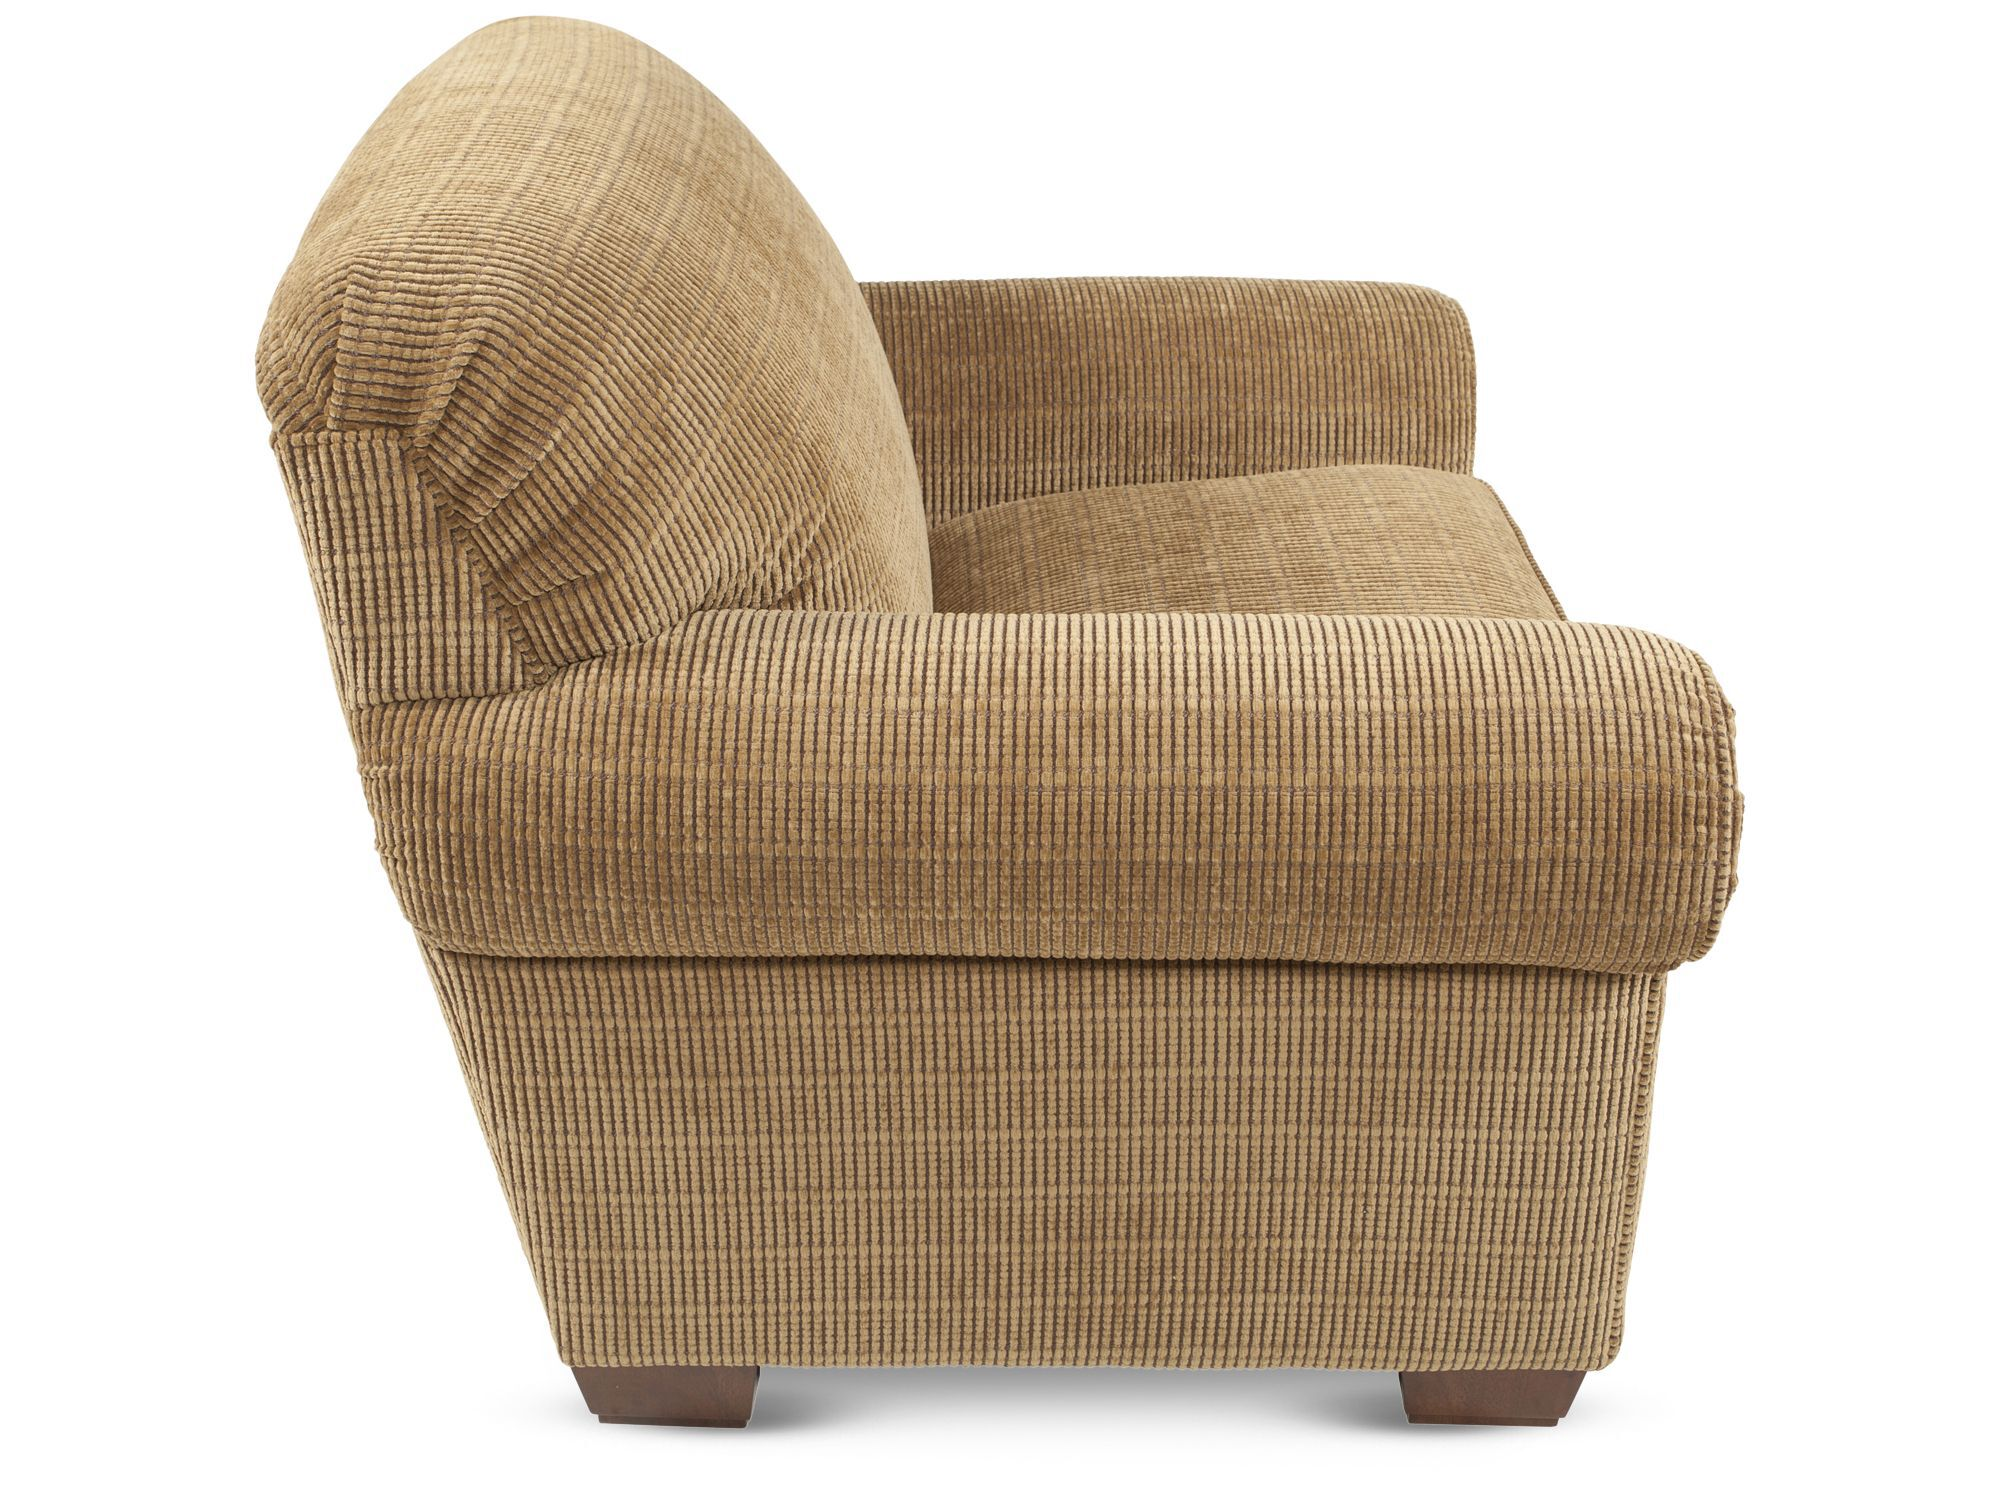 Burlap Chairs La Z Boy Mackenzie Burlap Chair Mathis Brothers Furniture